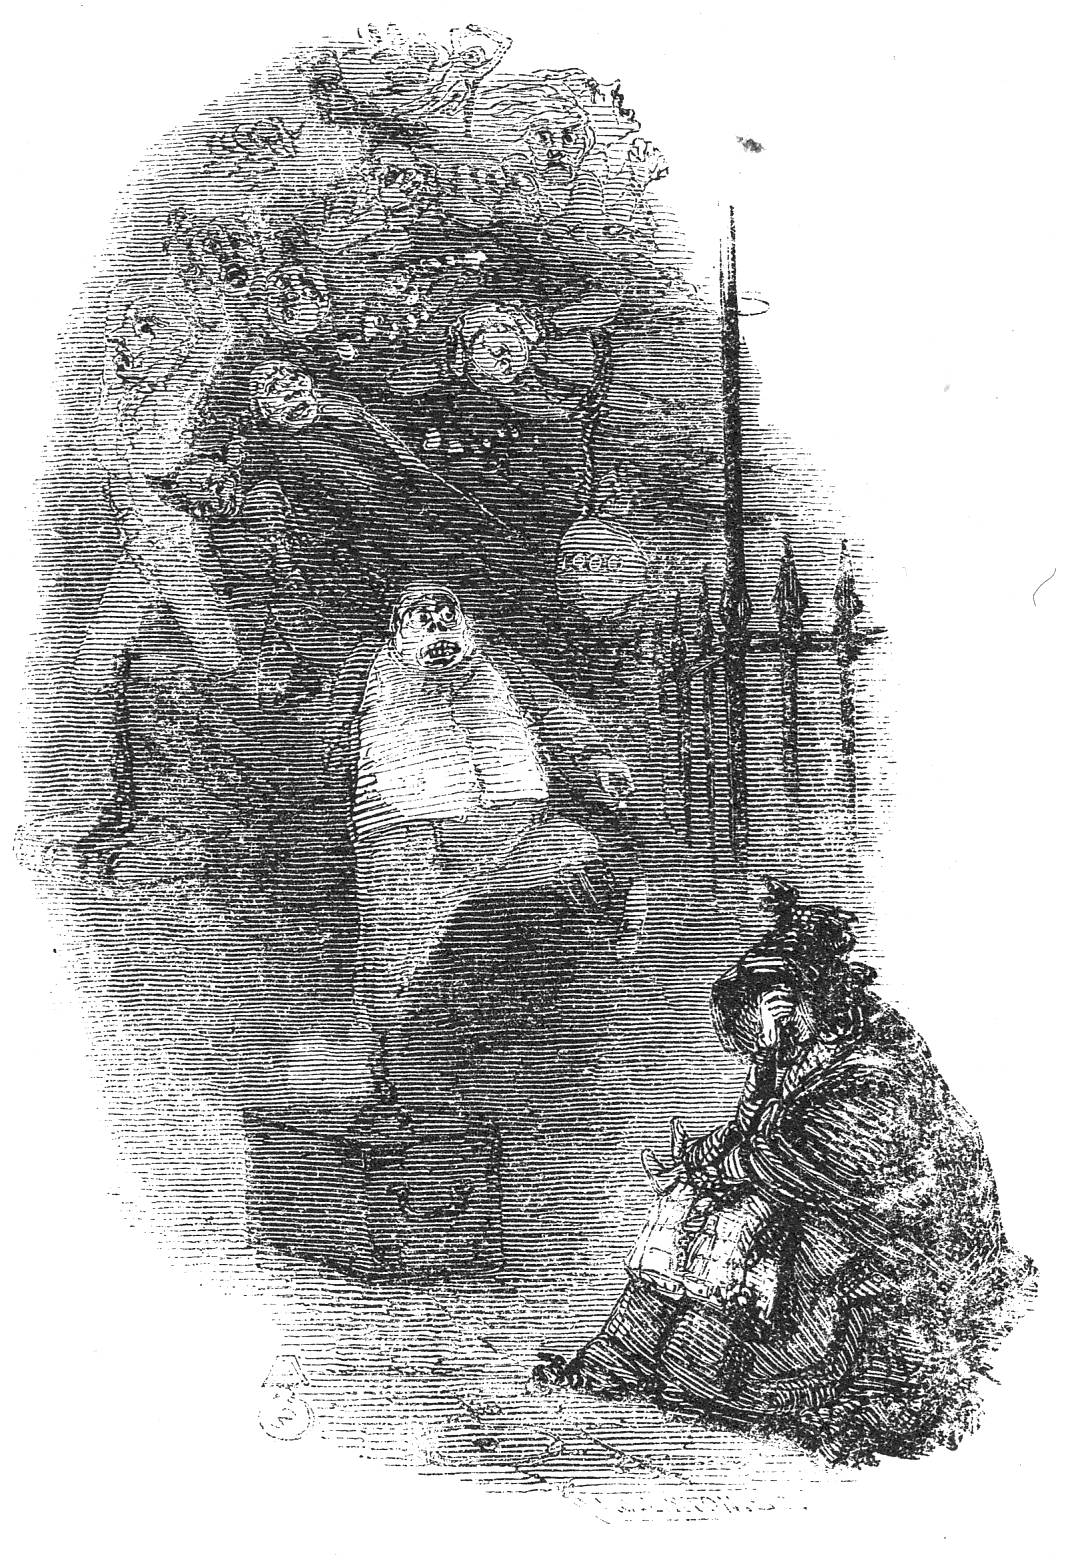 Who Wrote A Christmas Carol.A Gallery Of John Leech S Illustrations For Dickens S A